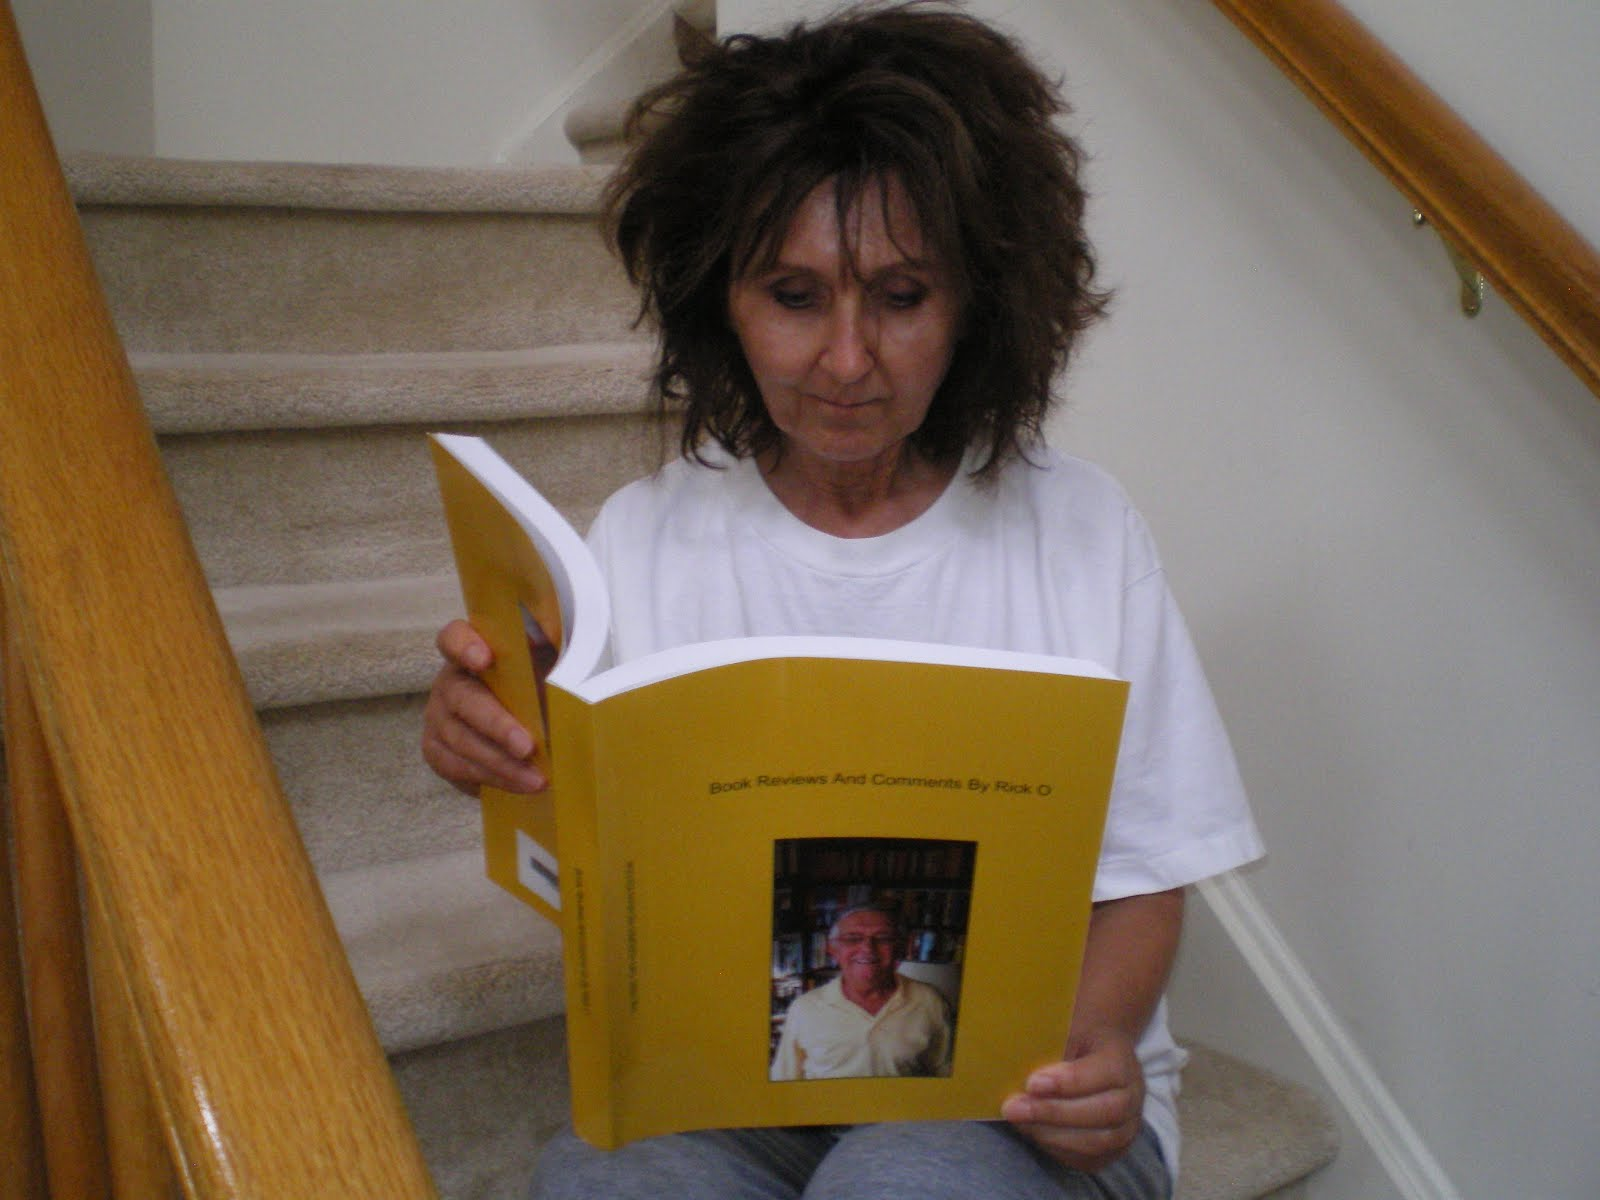 "Book review contributor, Pat Koelmel peruses her copy of ""Book Reviews and Comments by Rick O."""